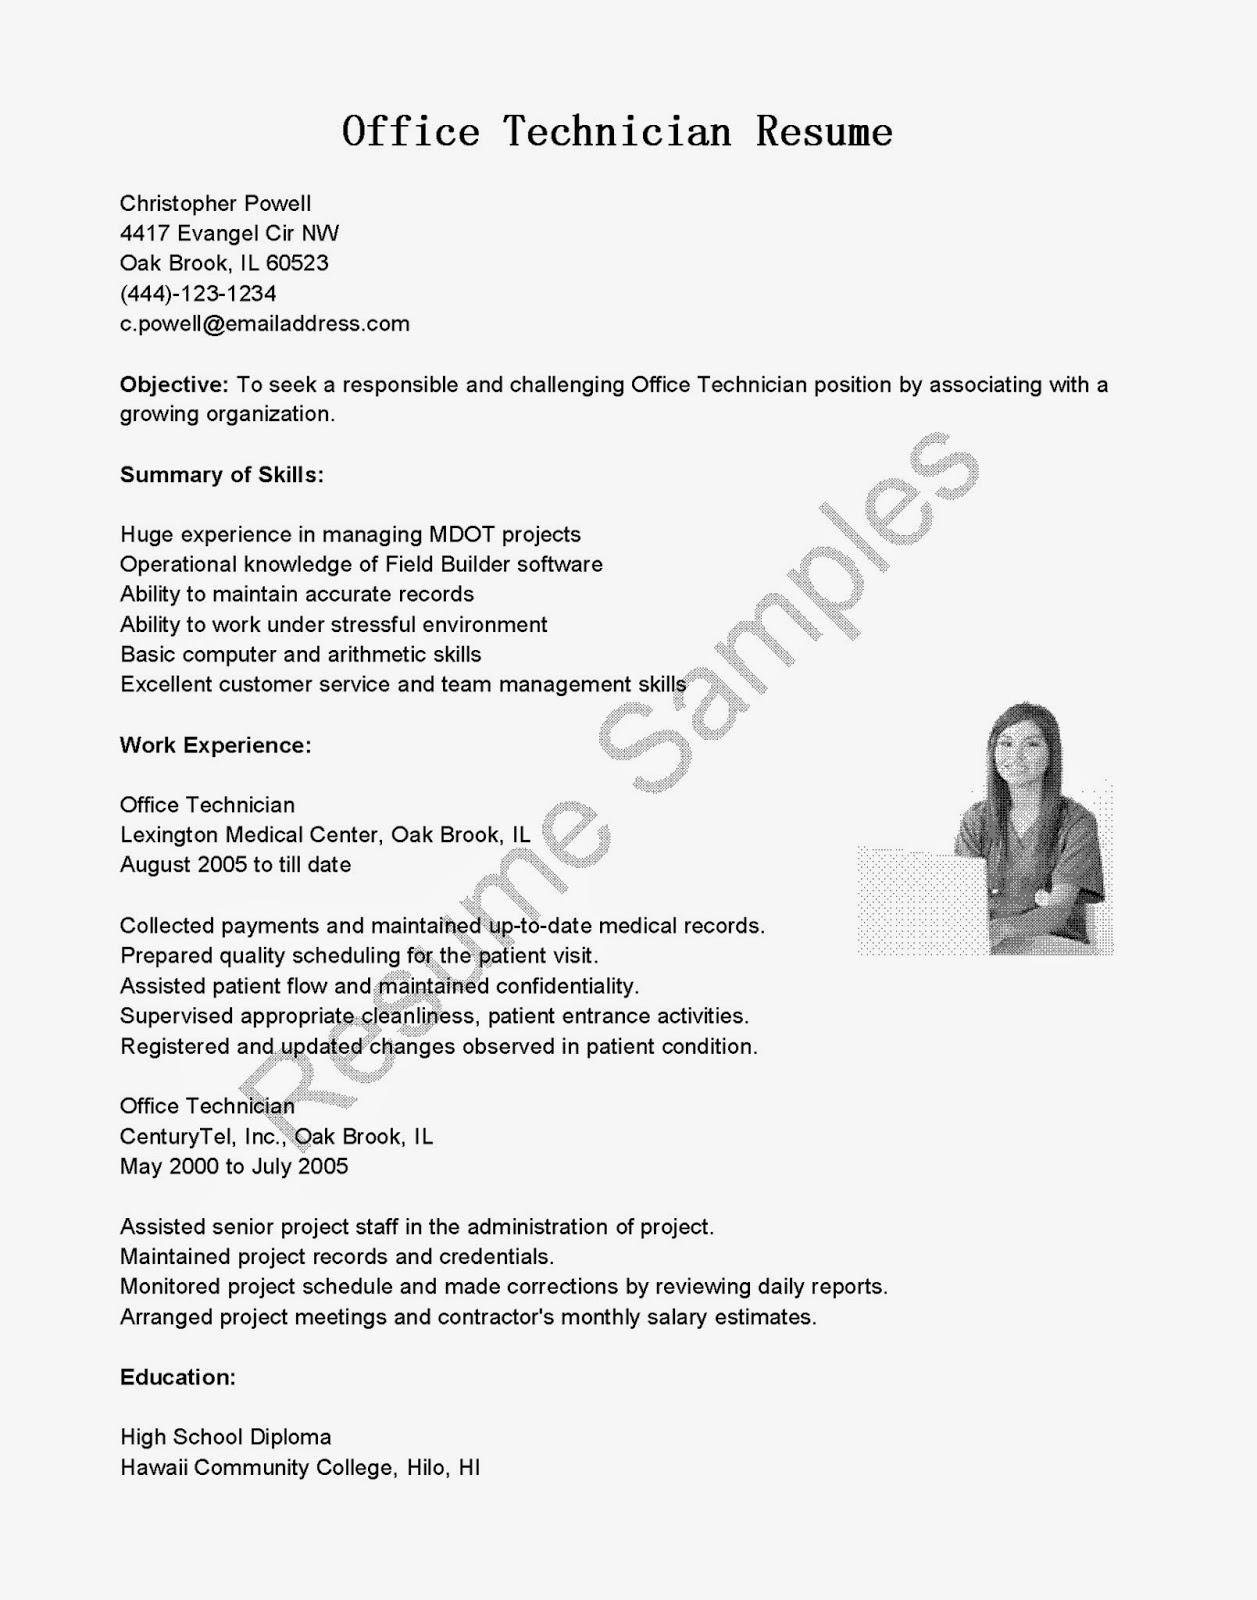 resume samples  office technician resume sample